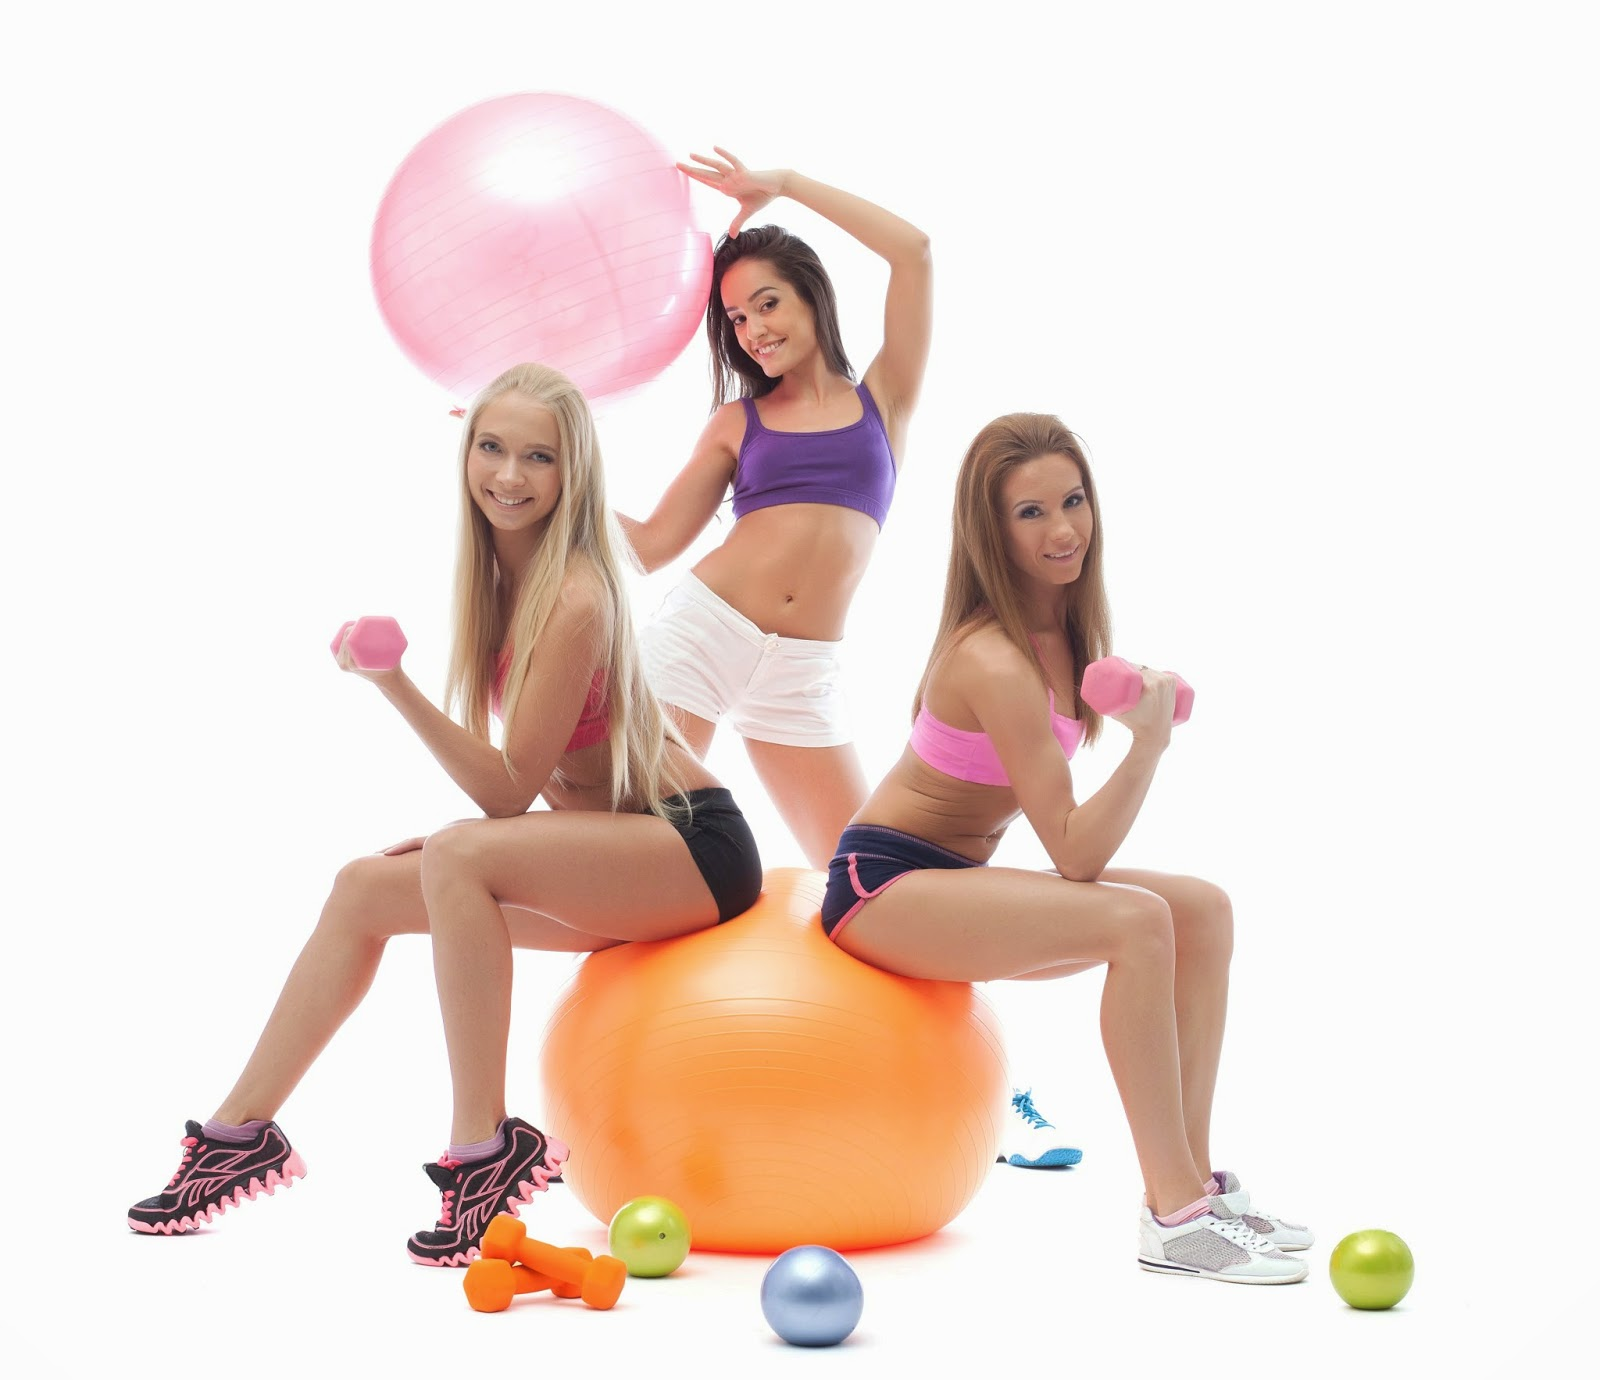 3 gym girls with baloons